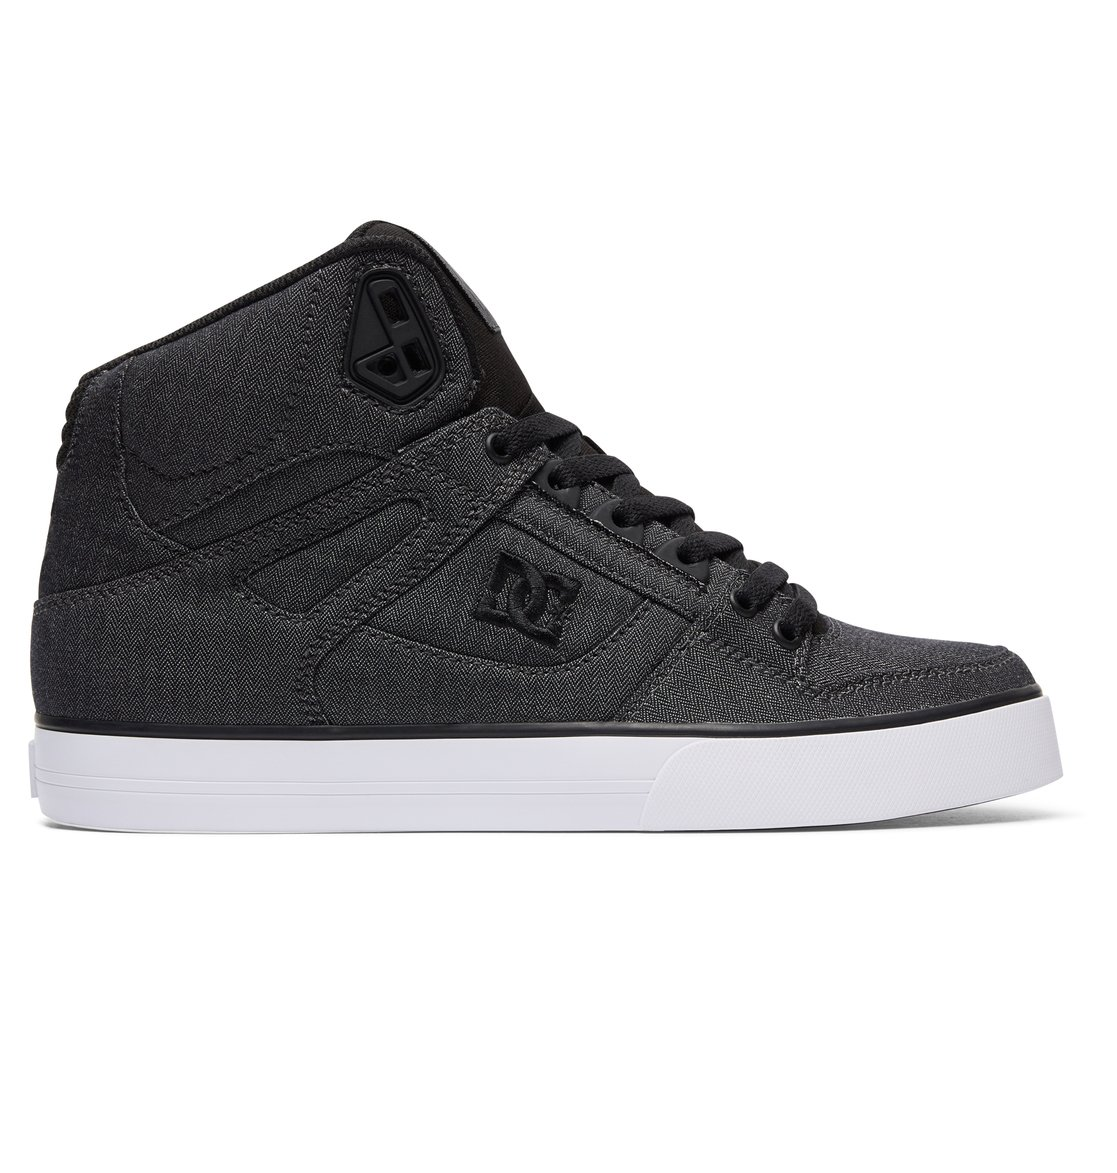 DC SHOES Spartan High Chaussure Homme - Taille 43 - BEIGE yRdTAlC